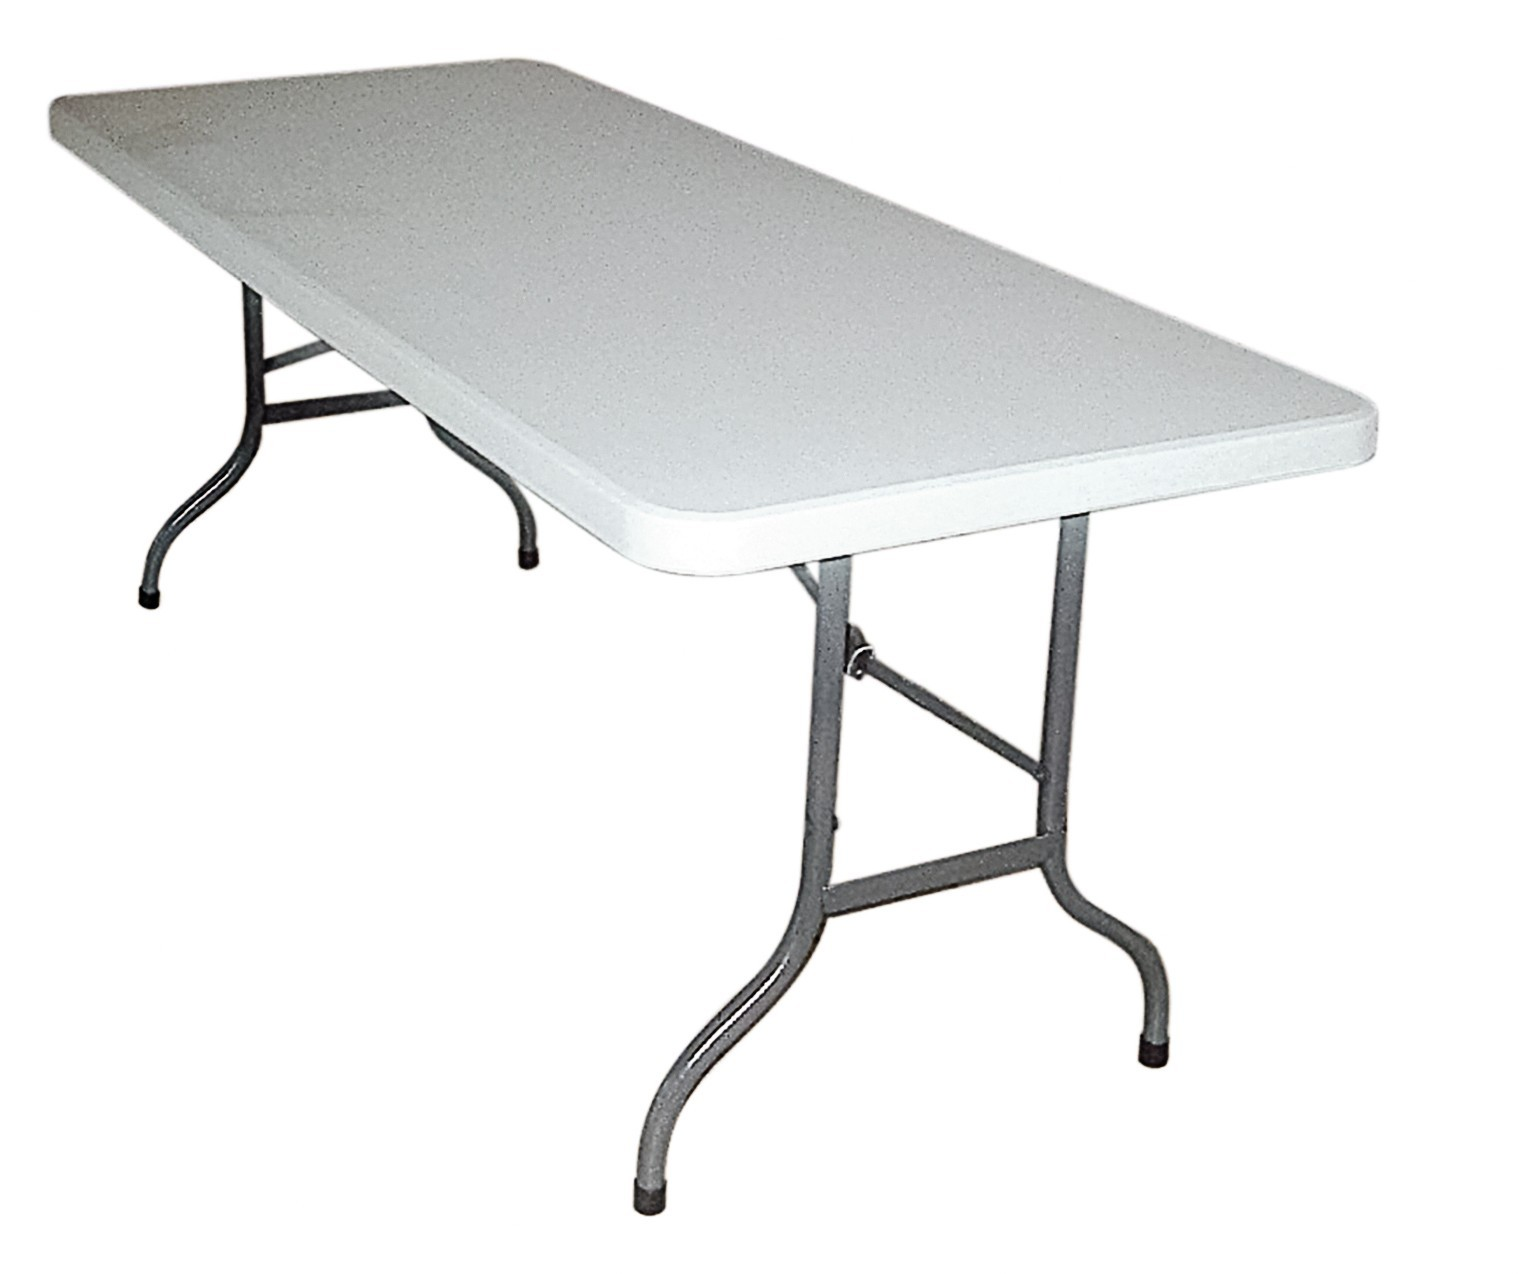 Table Pliante Plastique Carrefour Table Pliante Plastique Simple Table De Jardin Pliante